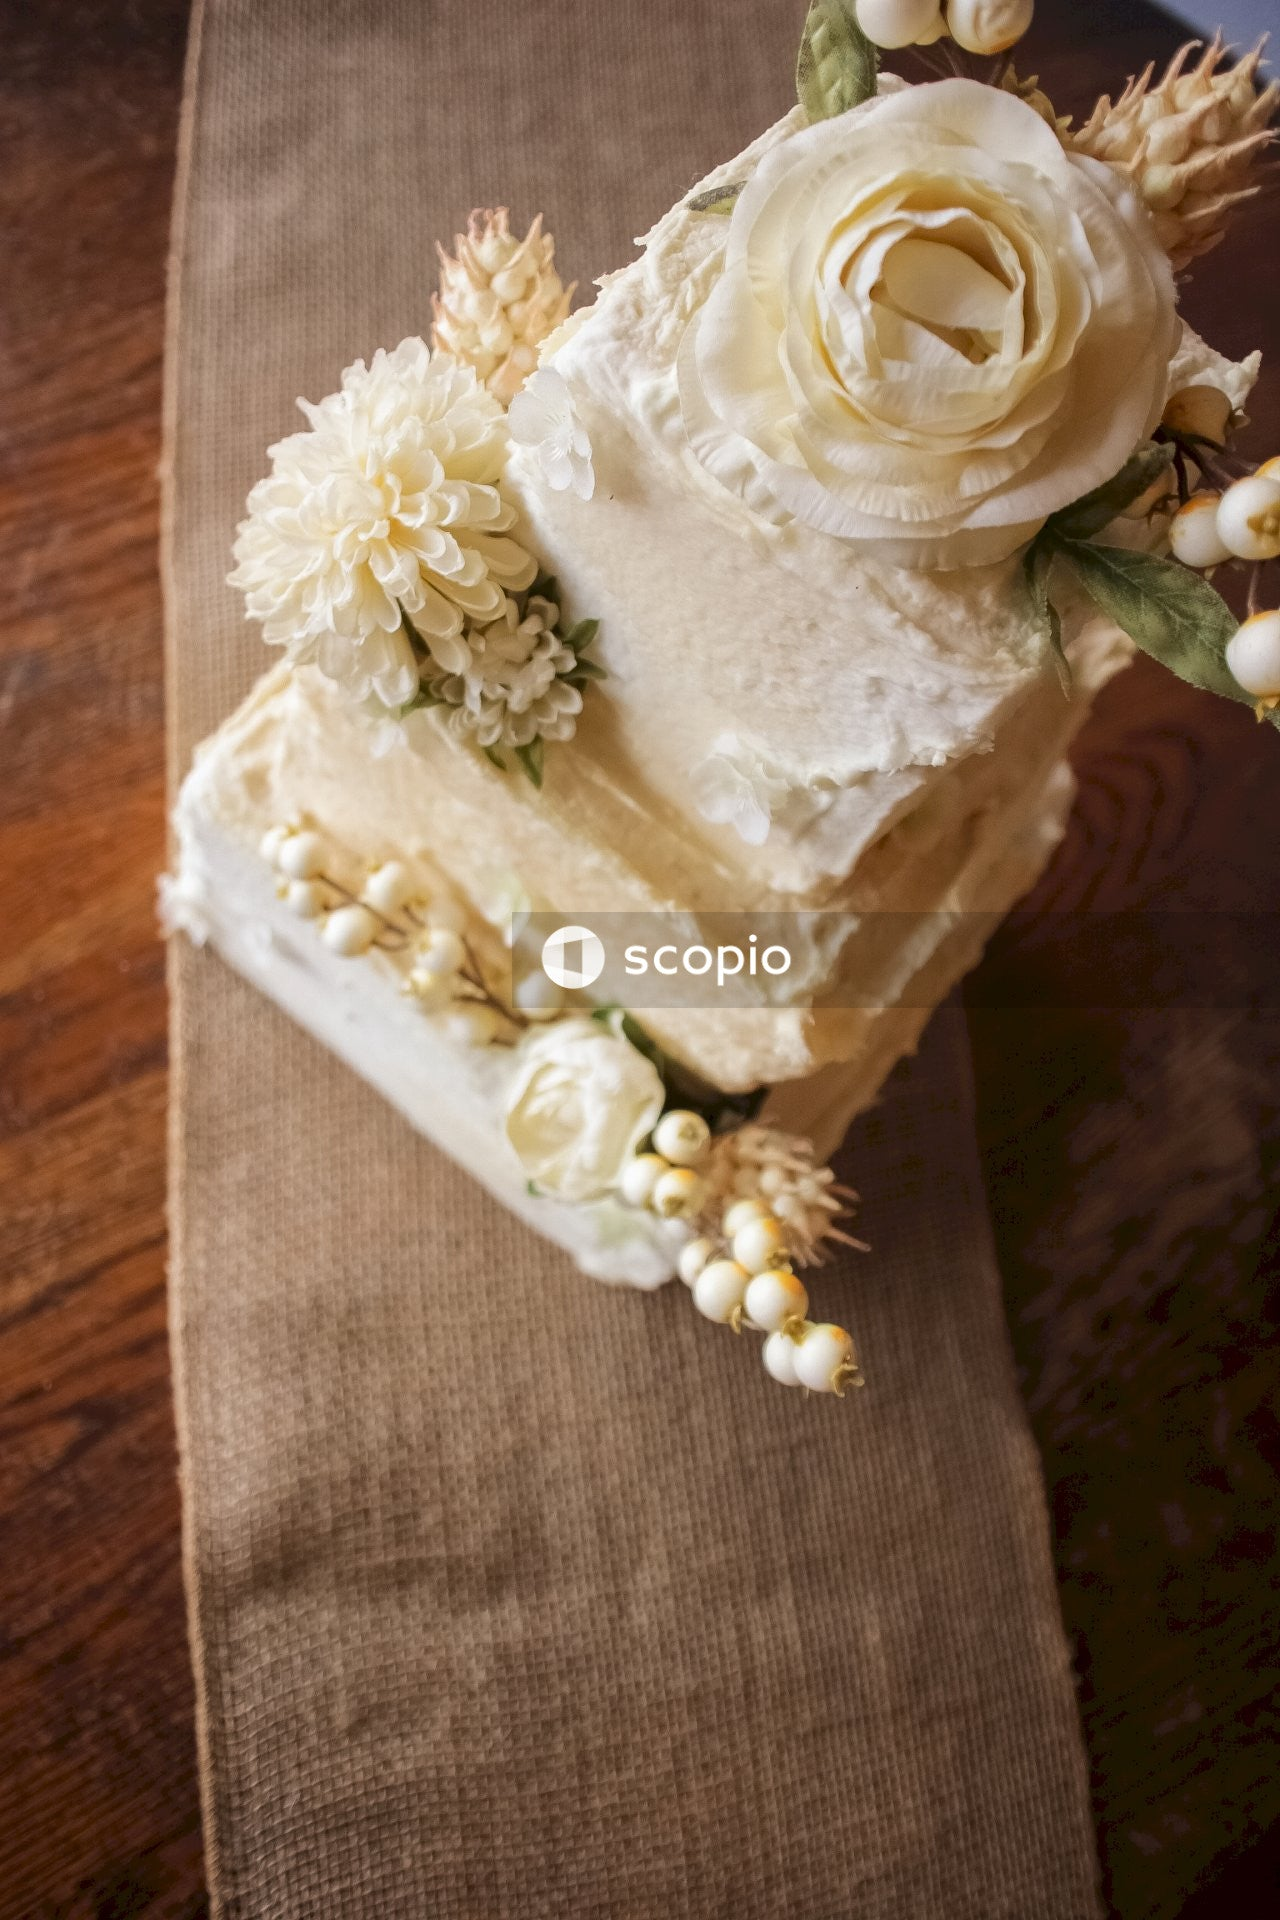 White and brown floral cake